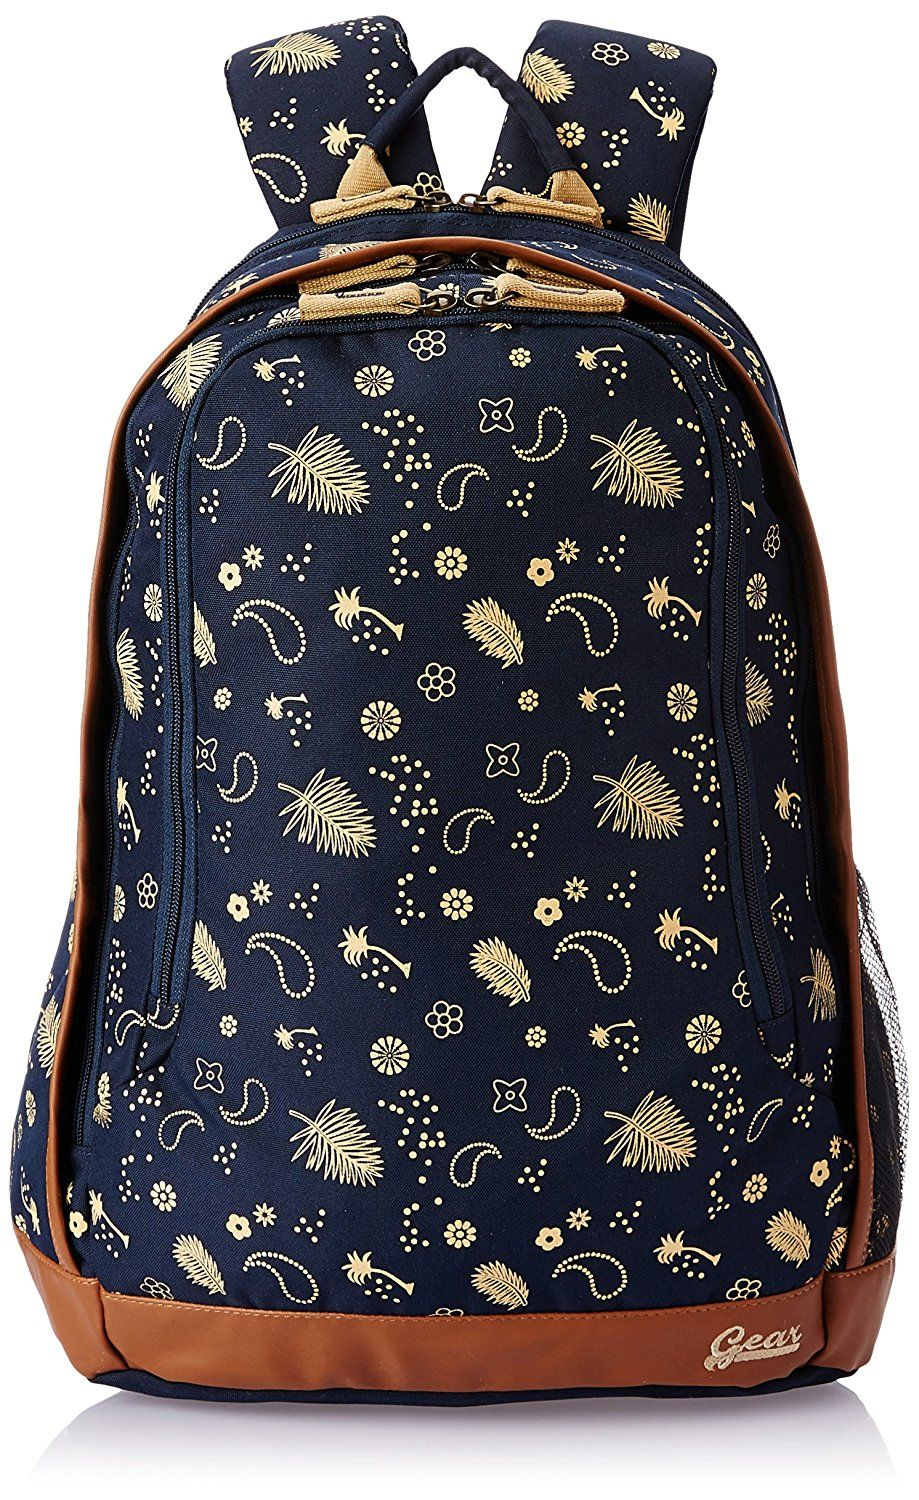 7d22c57d59 College bags online low price - What Best In India